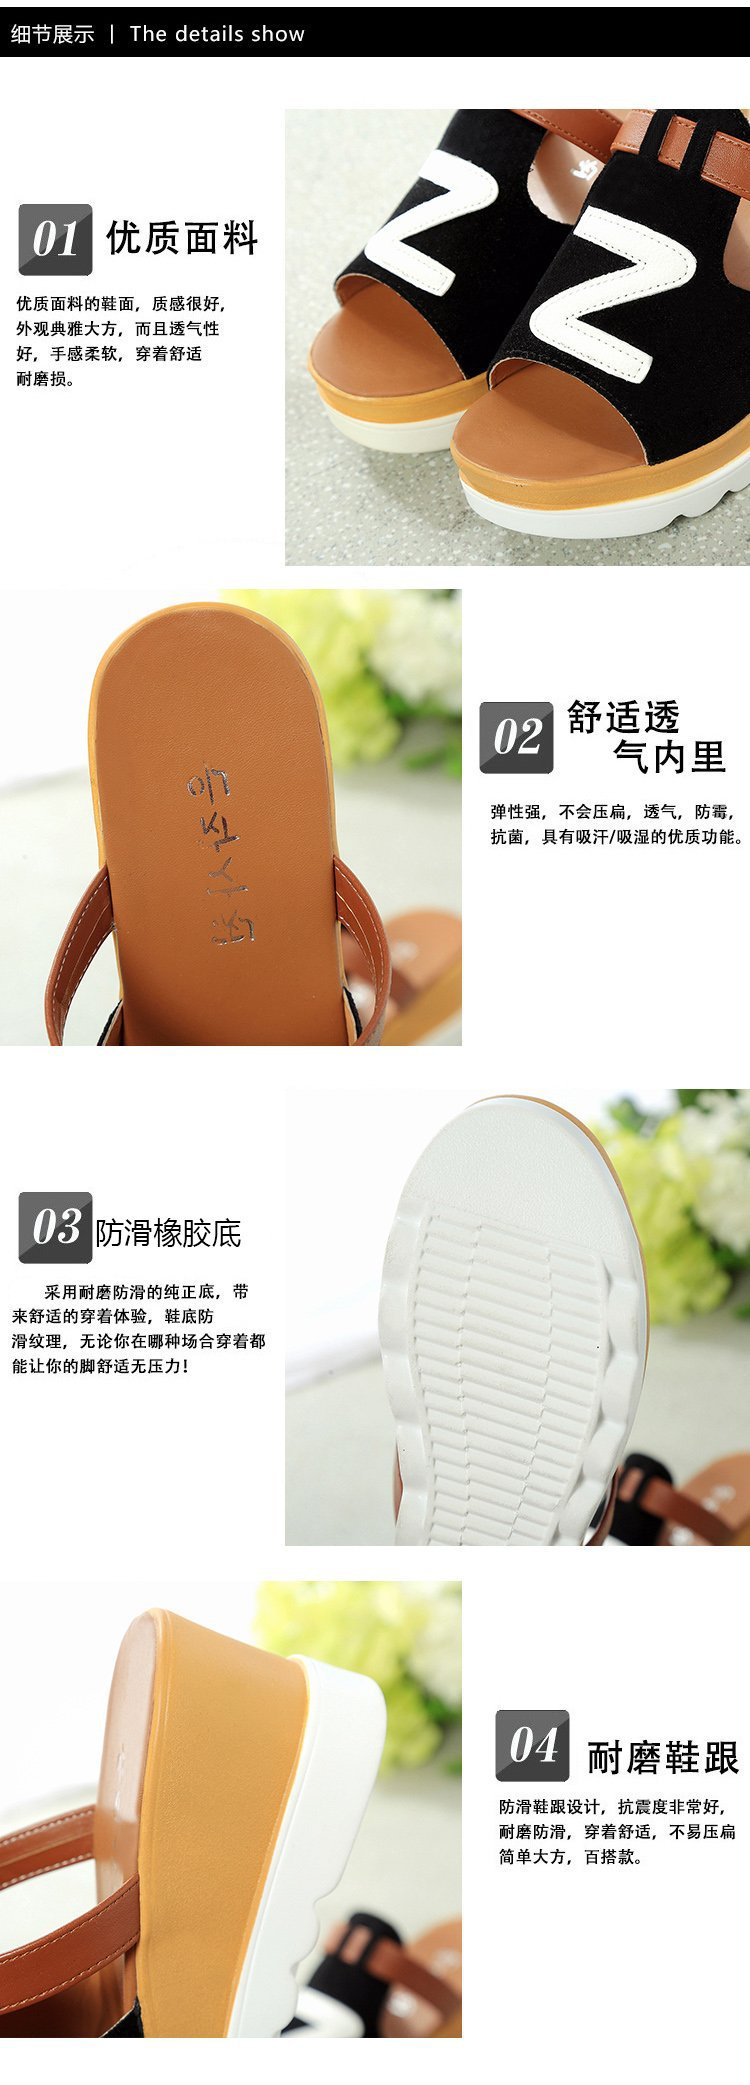 2018 summer new style slippers and slippers with high heel and thick anti-slip soles sandals with new sloping and muffin soles 8